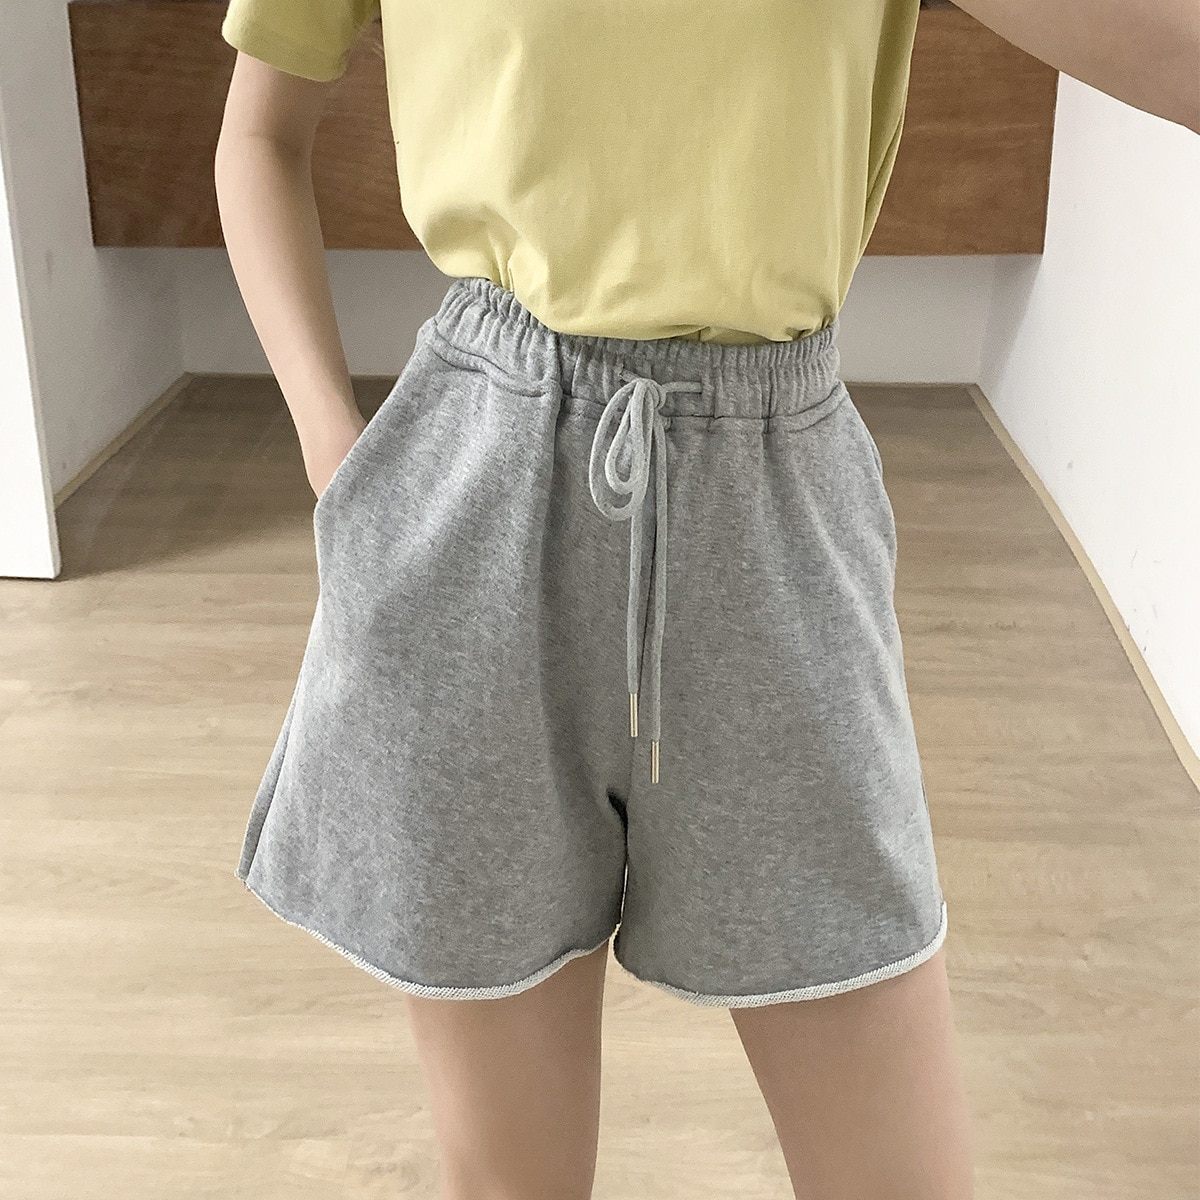 2021 New Summer Women Short Pants Casual High Waist Pure Color Female Trousers Outwear Shorts